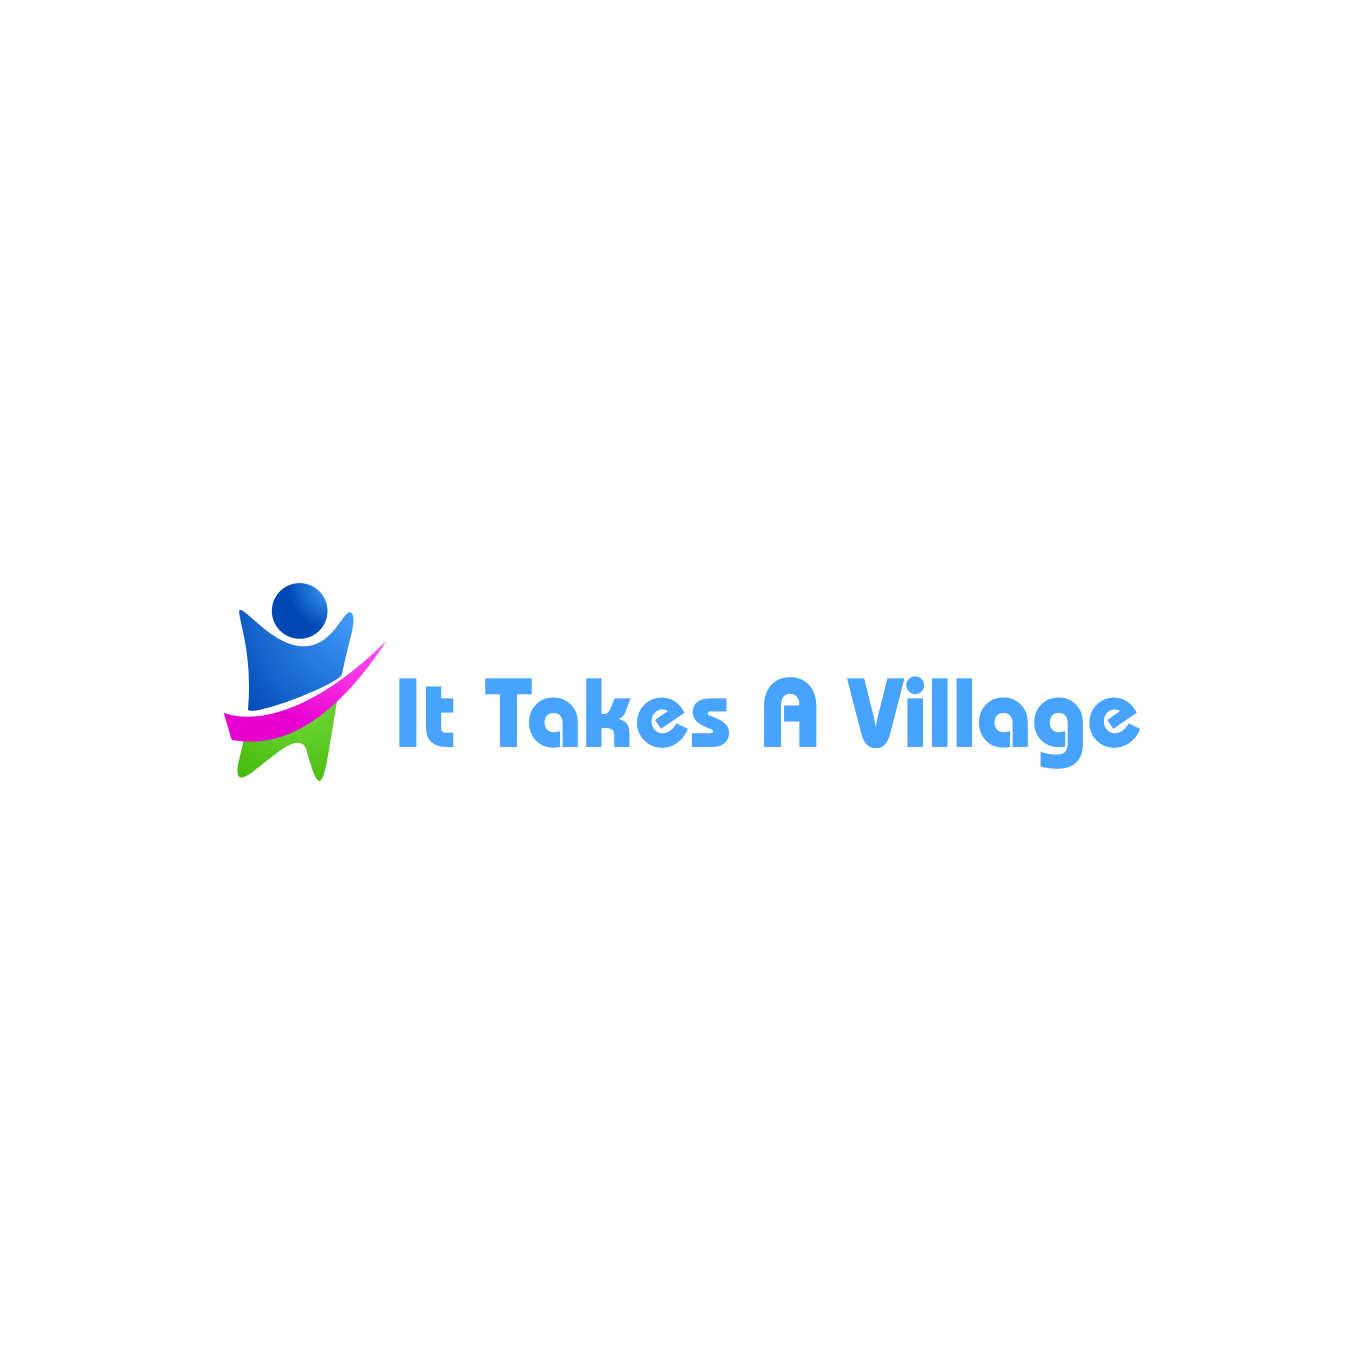 Logo Design by rifatz - Entry No. 49 in the Logo Design Contest Captivating Logo Design for It Takes A Village.